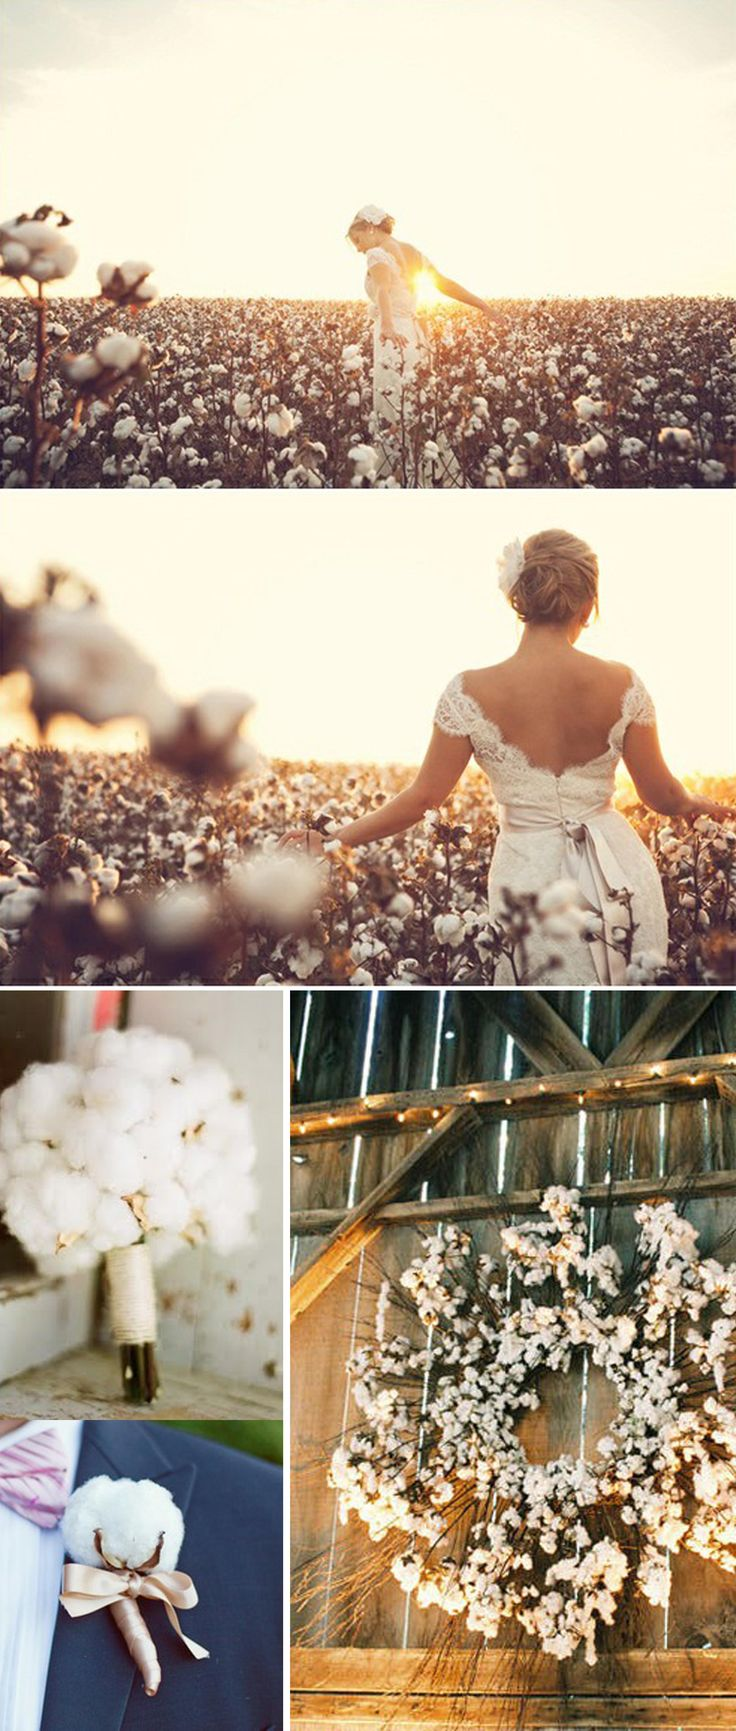 Walkin' In High Cotton ~ We Are Blessed To Be Born And Raised In The South!